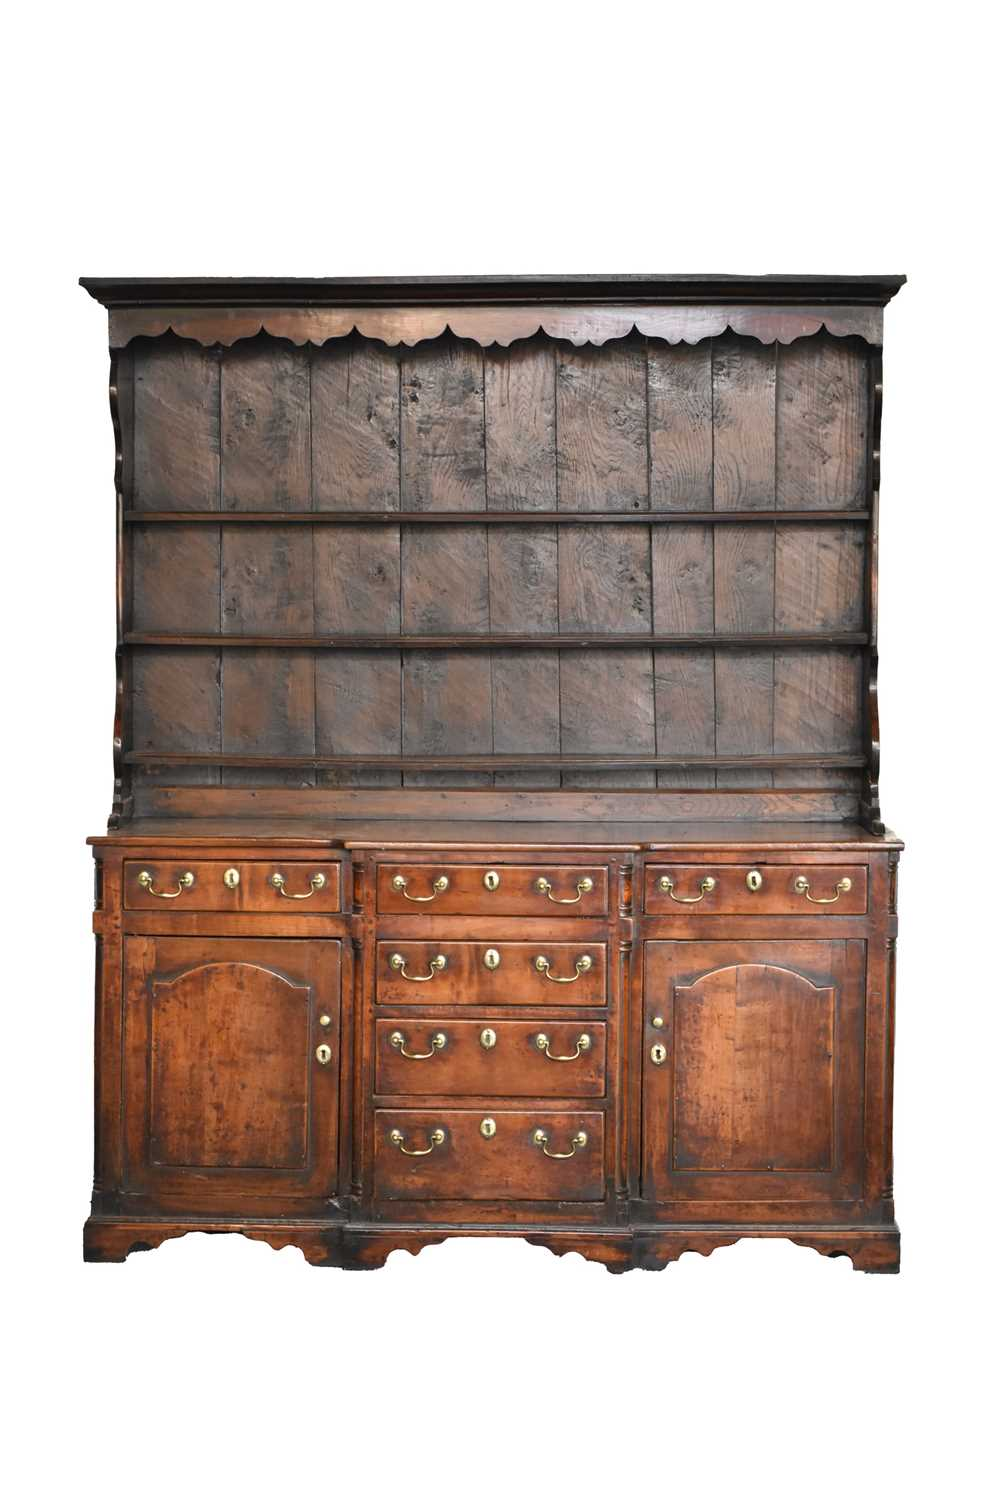 A late 18th century fruitwood or yew wood breakfront dresser, North Wales